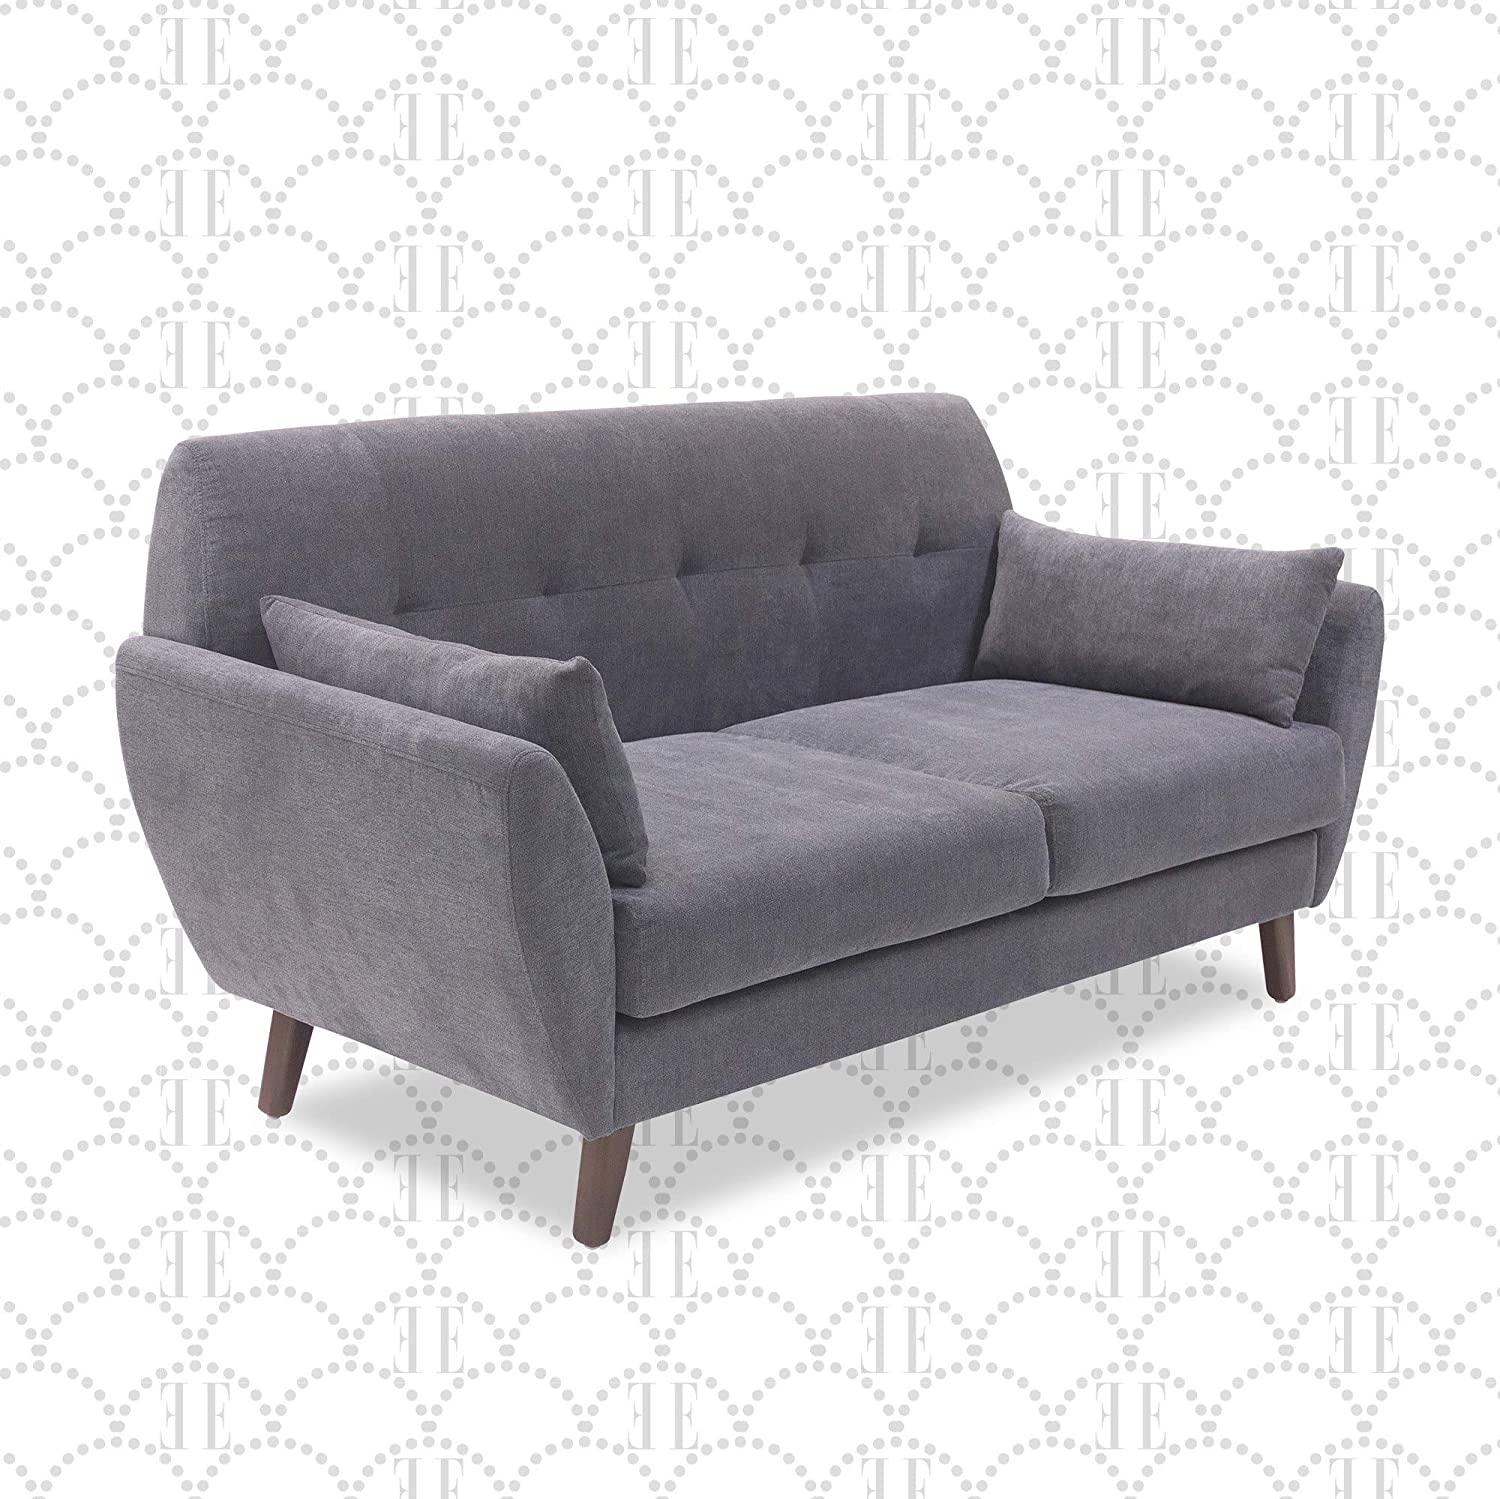 Elle Decor Amelie Upholstered Sofa Collection Mid Century Modern Design Couch With Flared Arms Pet Friendly Fabric Upholstery Tool Free Assembly 61 Loveseat Dark Gray Furniture Decor